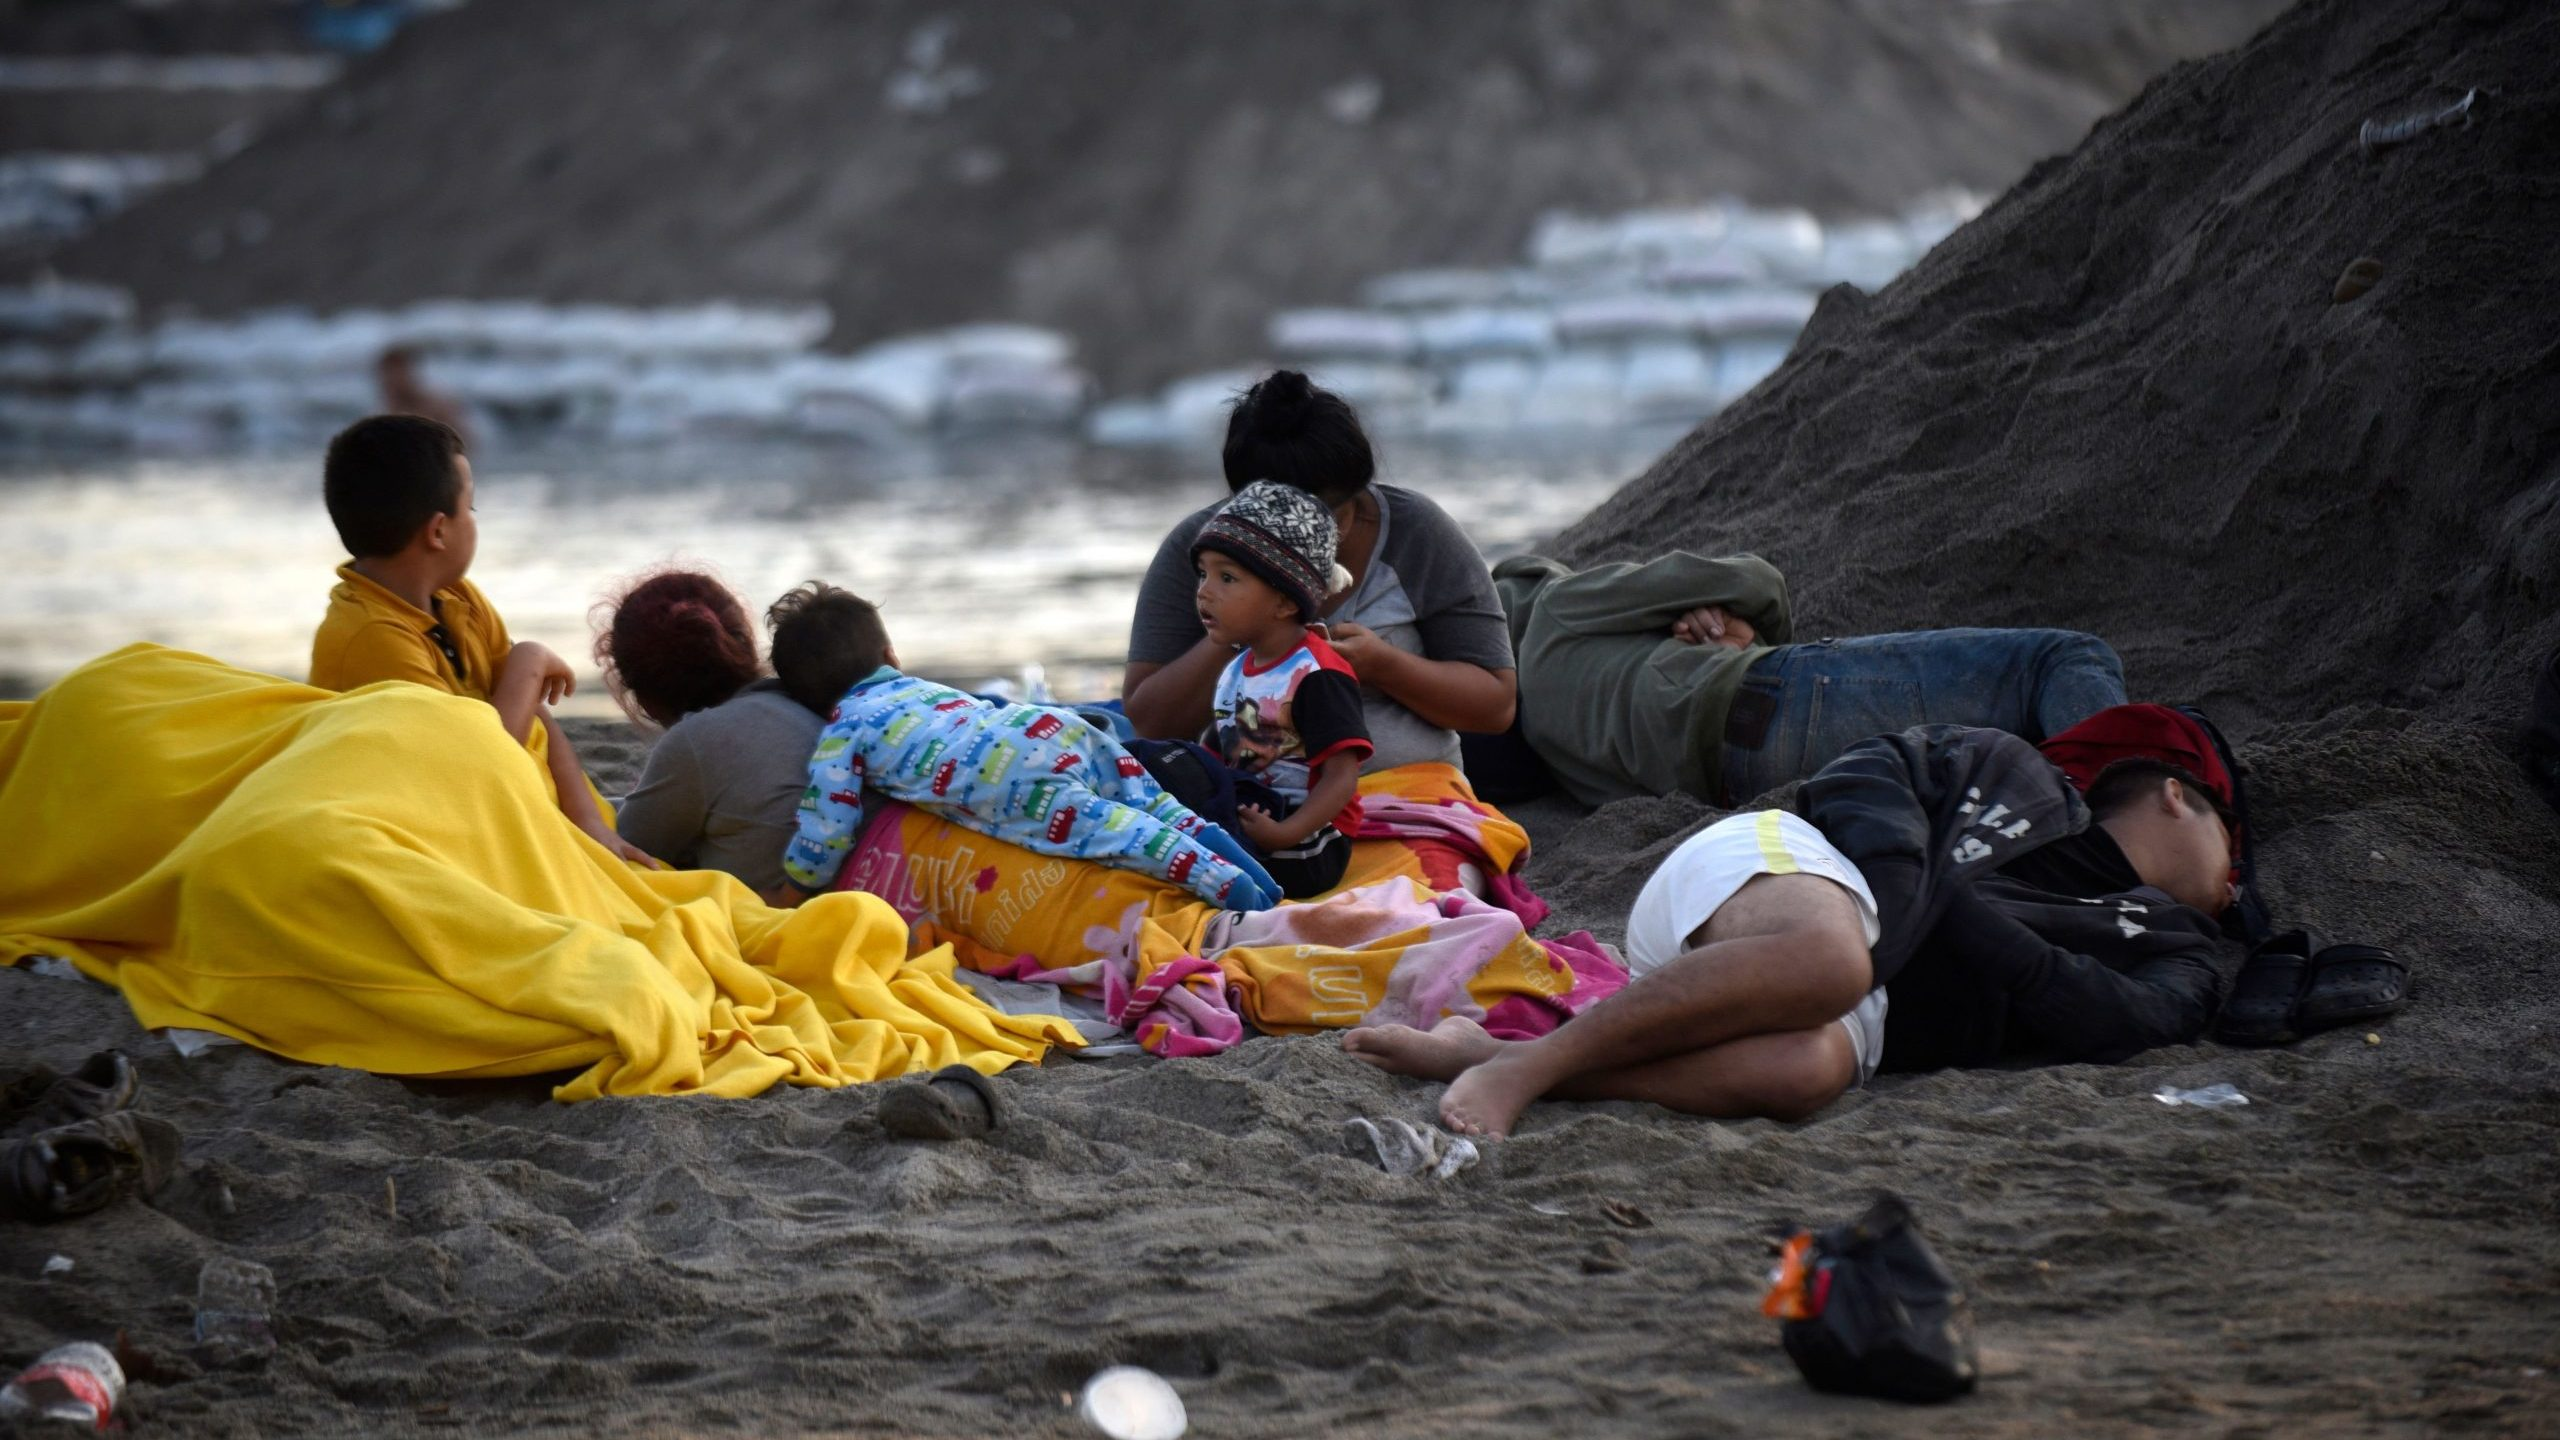 Central American migrants, heading in a caravan for the U.S., wake up on the bank of the Suchiate River, where they spent the night, in Ciudad Hidalgo, Mexico, after crossing from Tecun Uman, Guatemala, on Jan. 21, 2020. (Credit: Johan Ordonez / AFP / Getty Images)